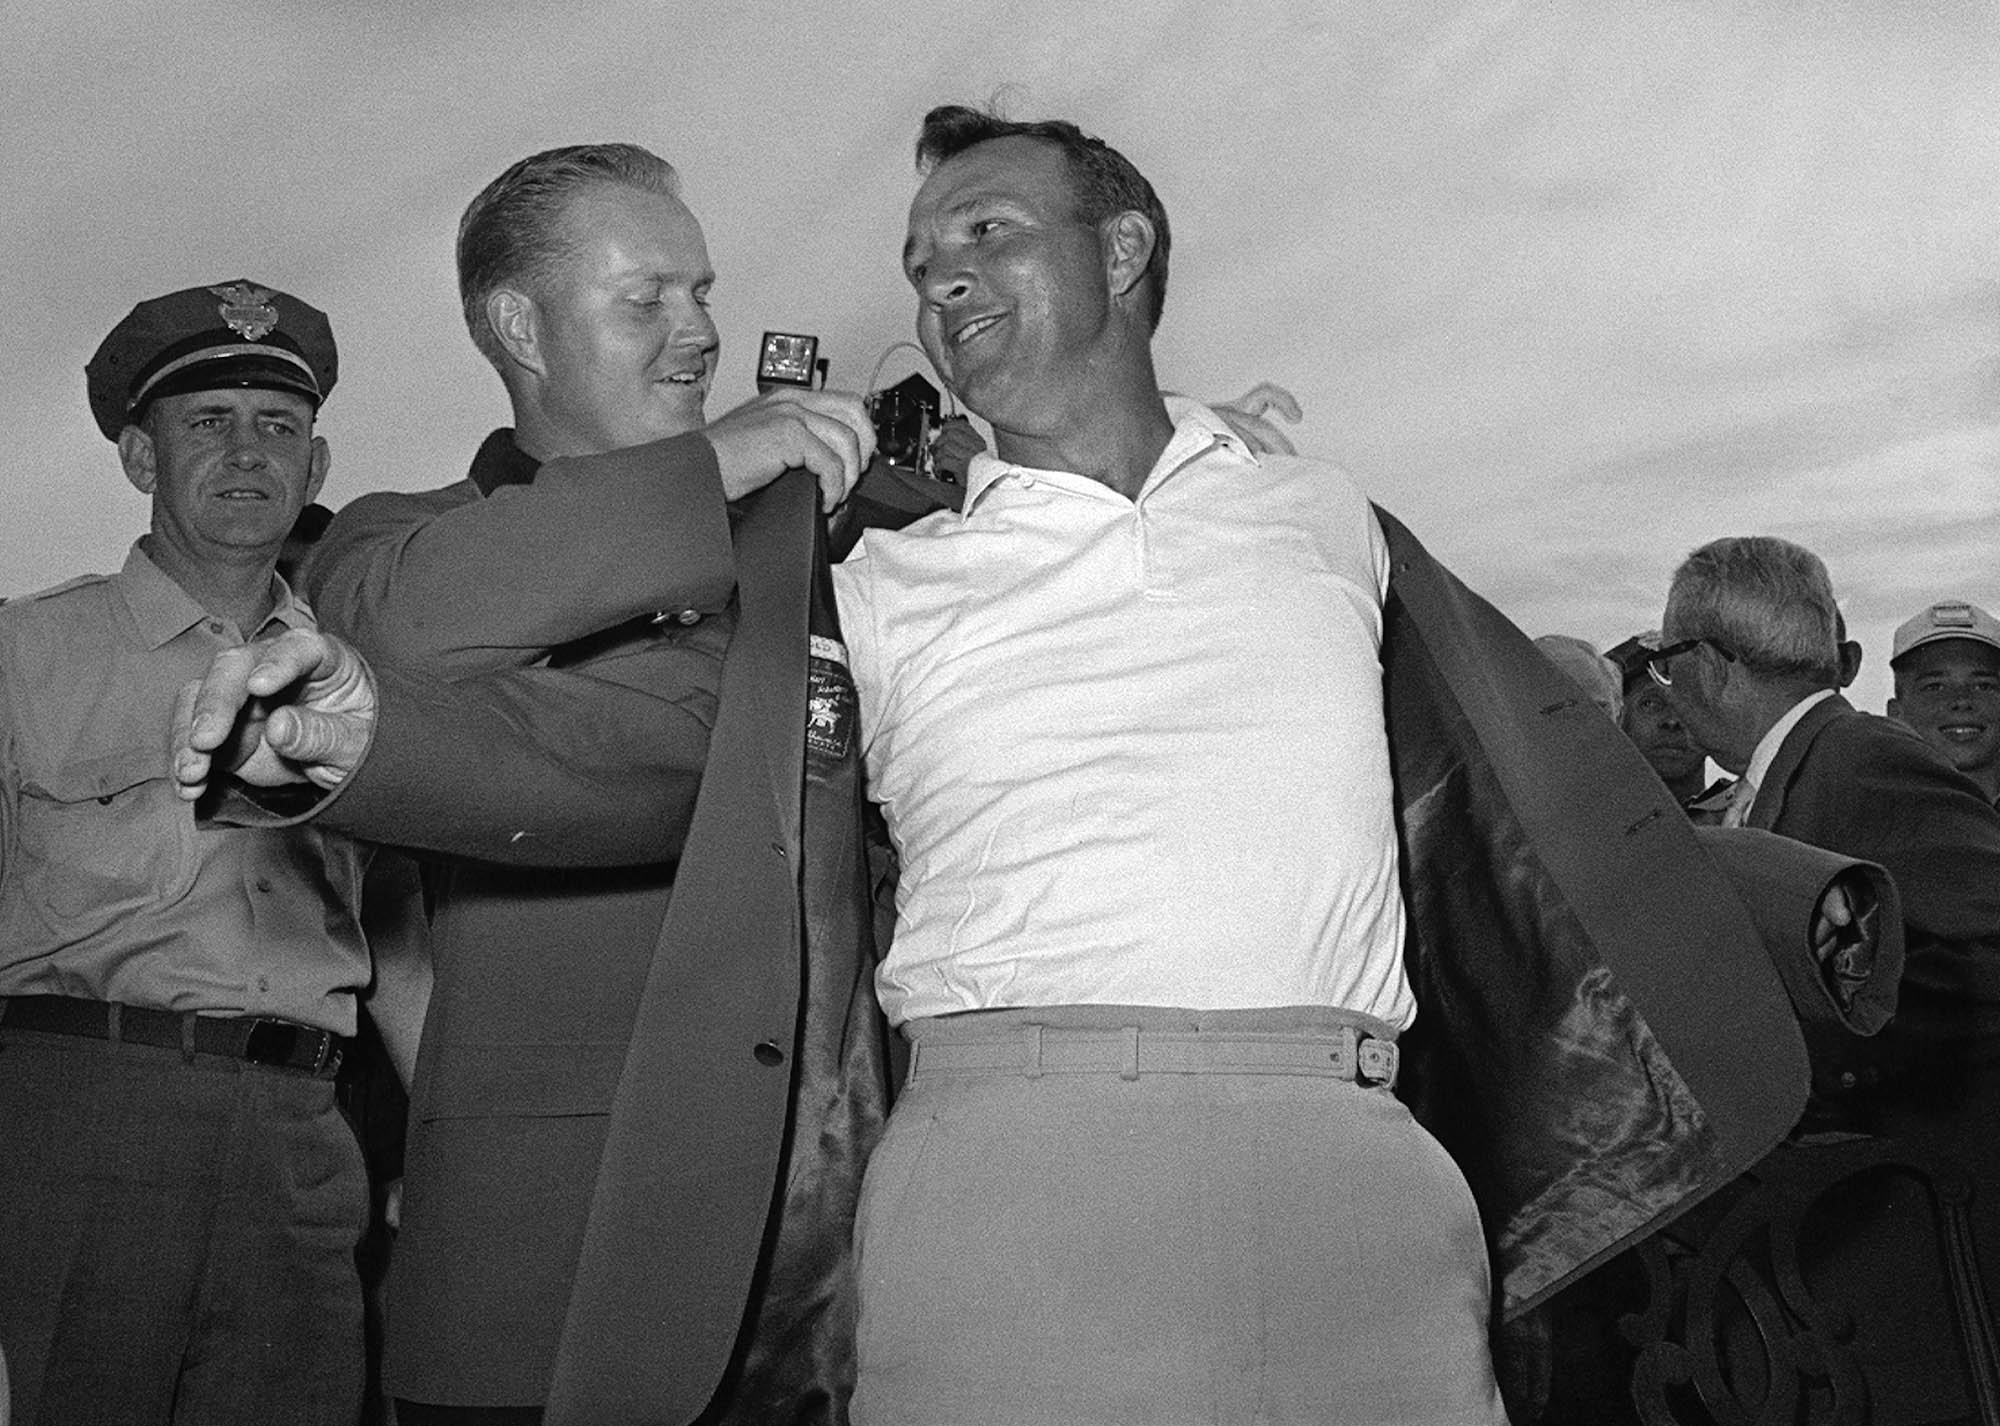 FILE - In this April 12, 1964 file photo, Arnold Palmer, right, slips into his green jacket with help from Jack Nicklaus after winning the Masters golf championship, in Augusta, Ga. Palmer, who made golf popular for the masses with his hard-charging style